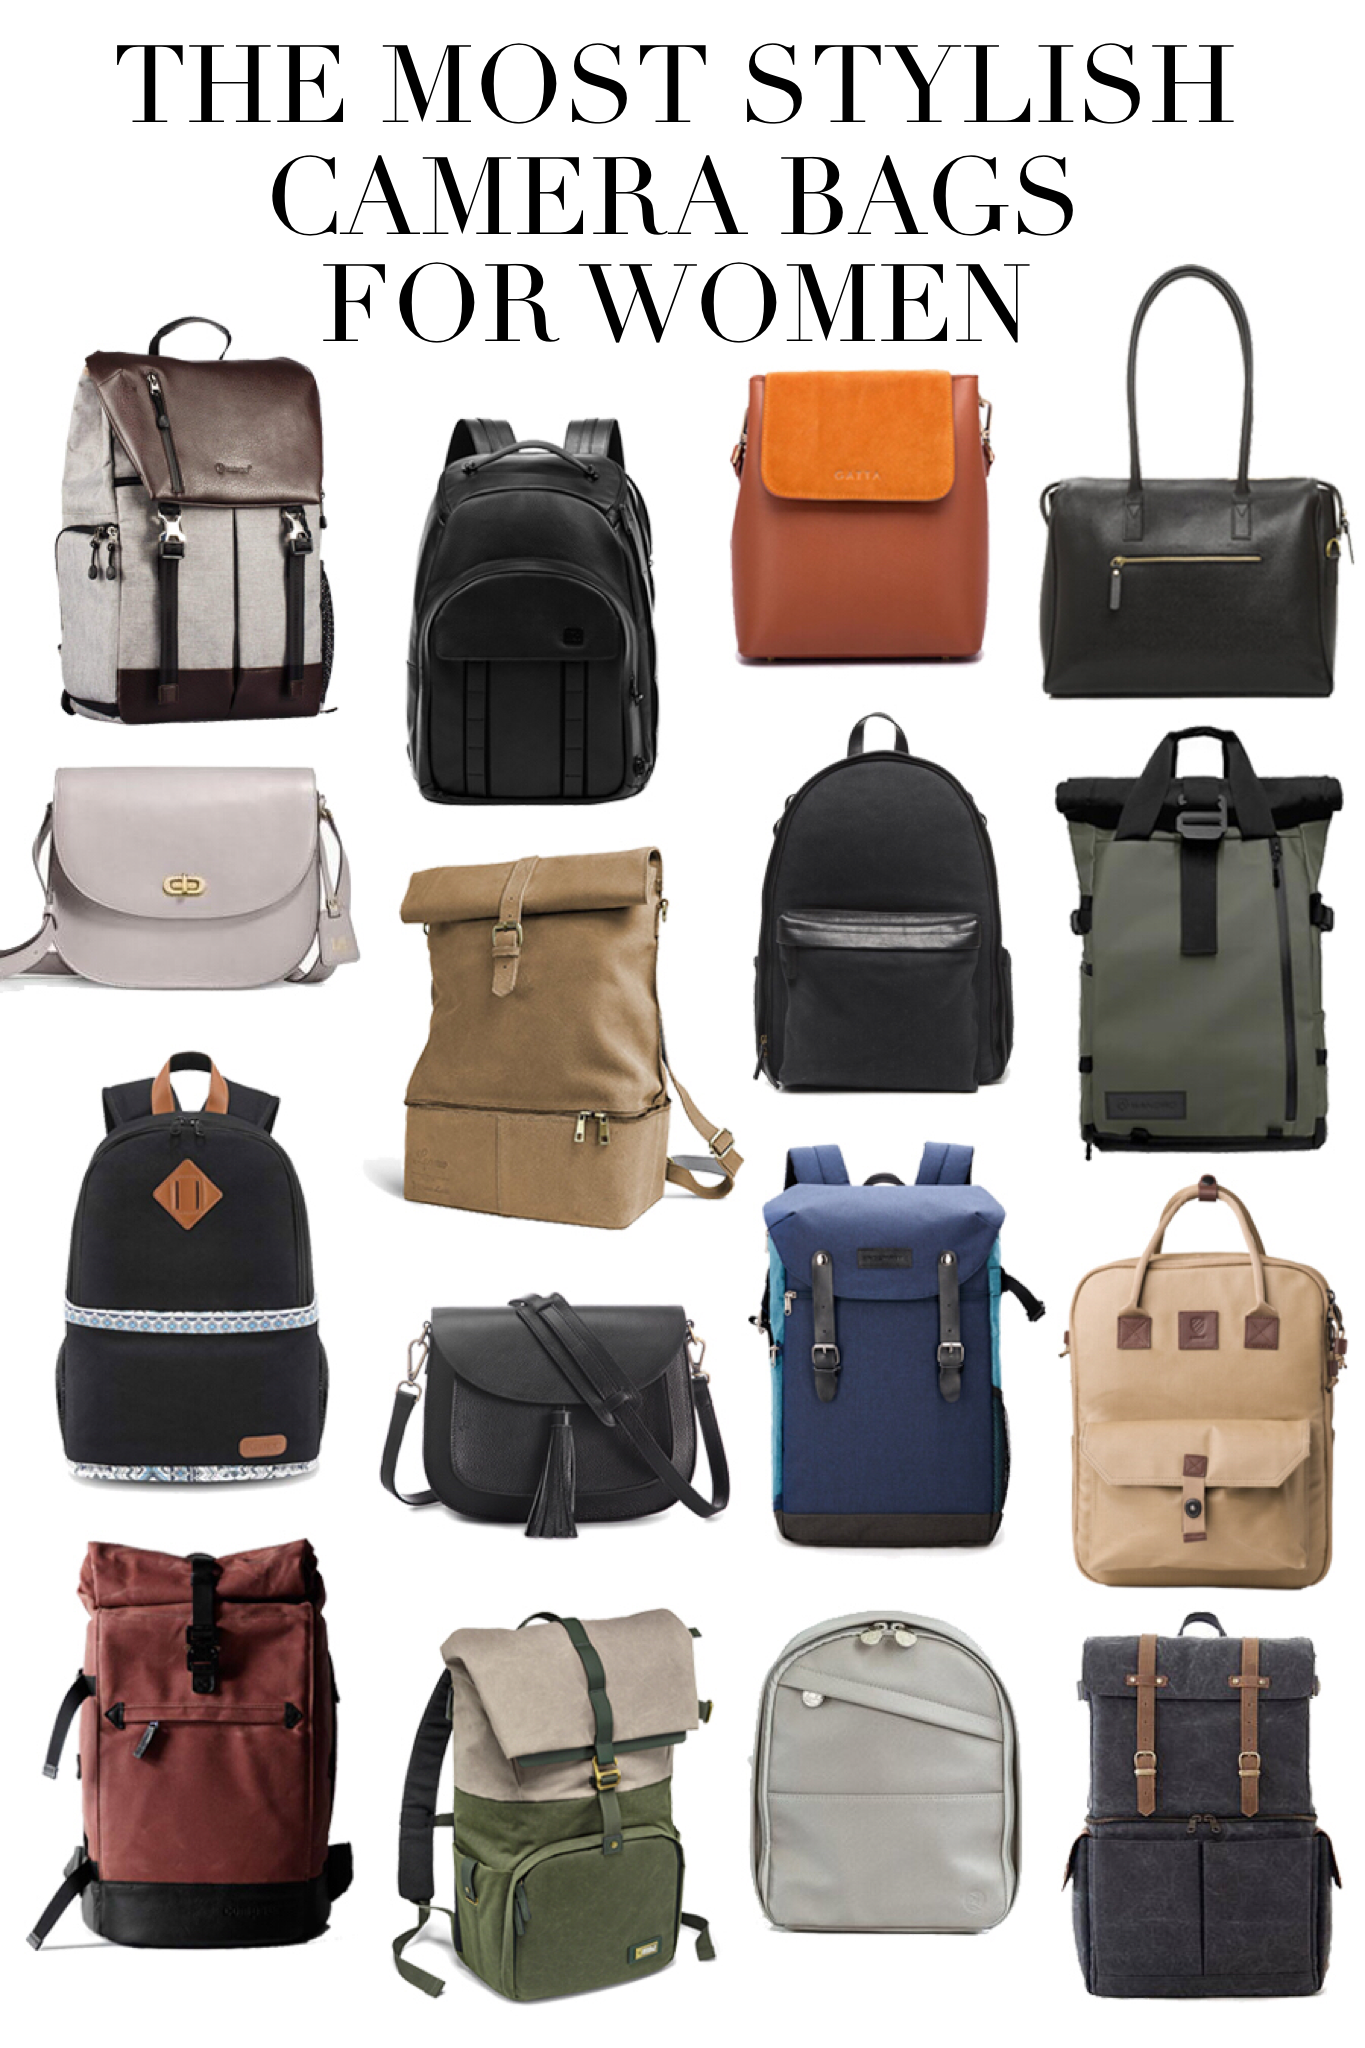 91cc56b5bae7 The 15 Best Stylish Camera Bags For Women Right Now | Travel Tips ...